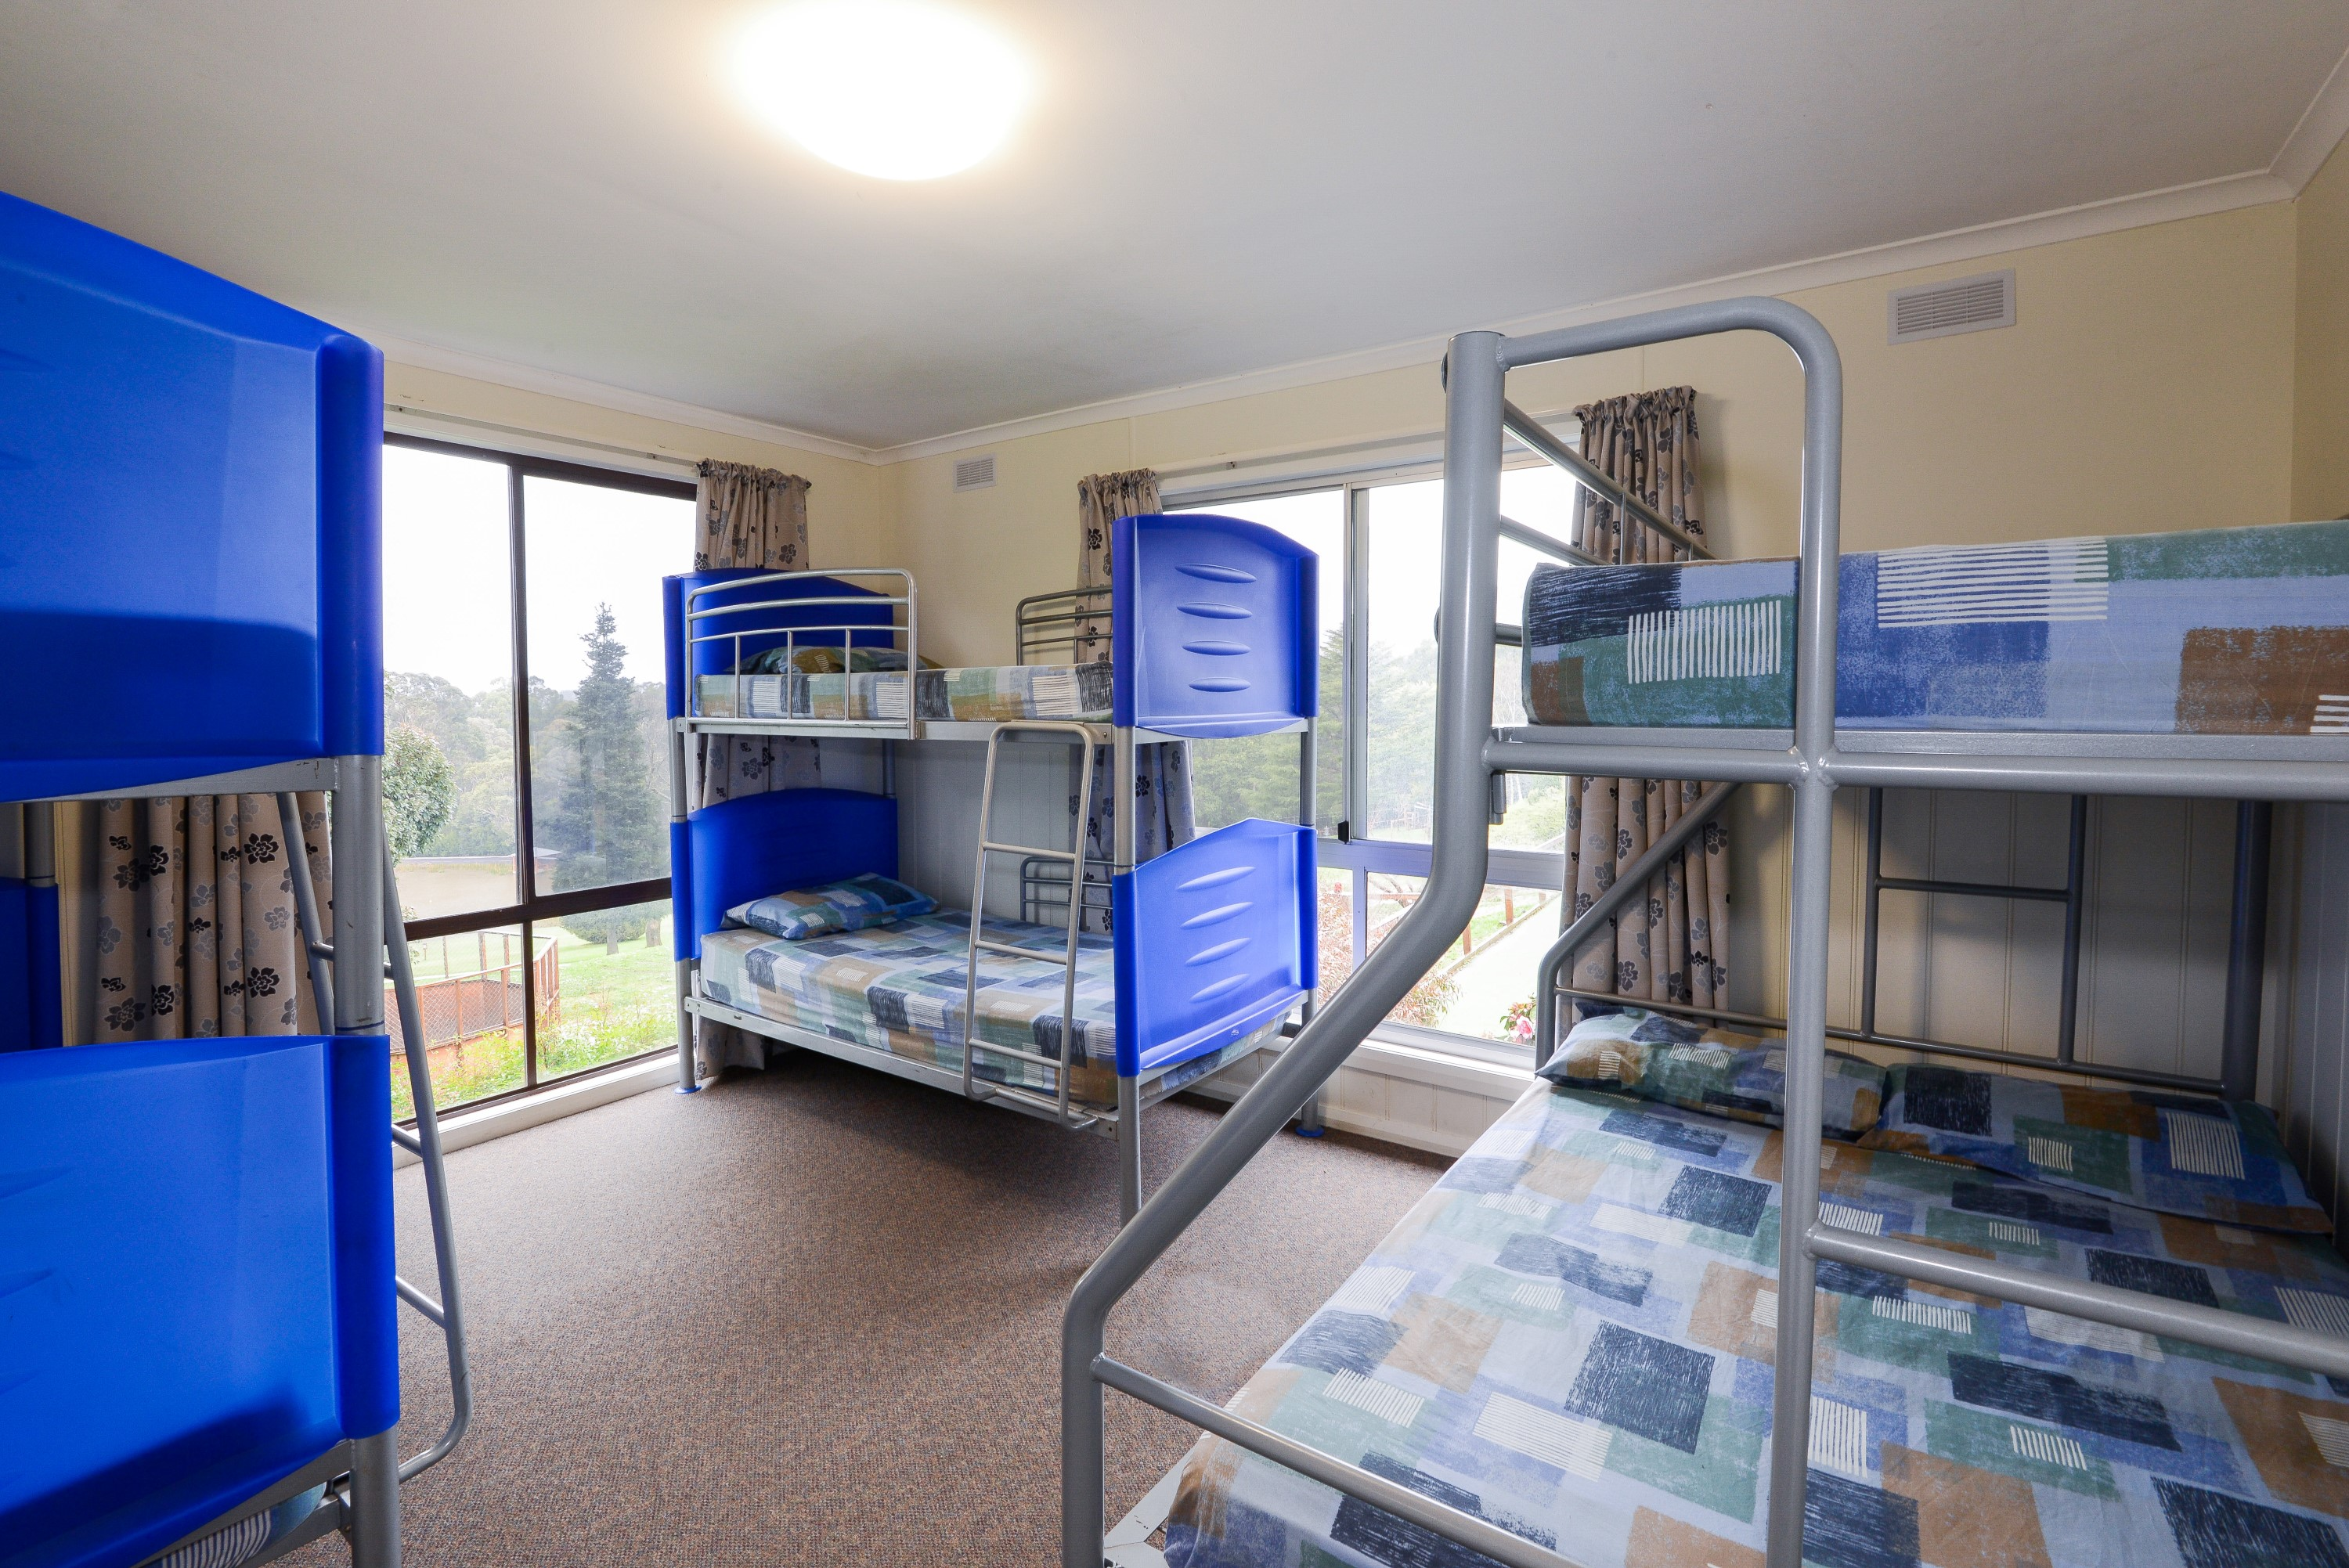 Accommodation Adanac Cyc